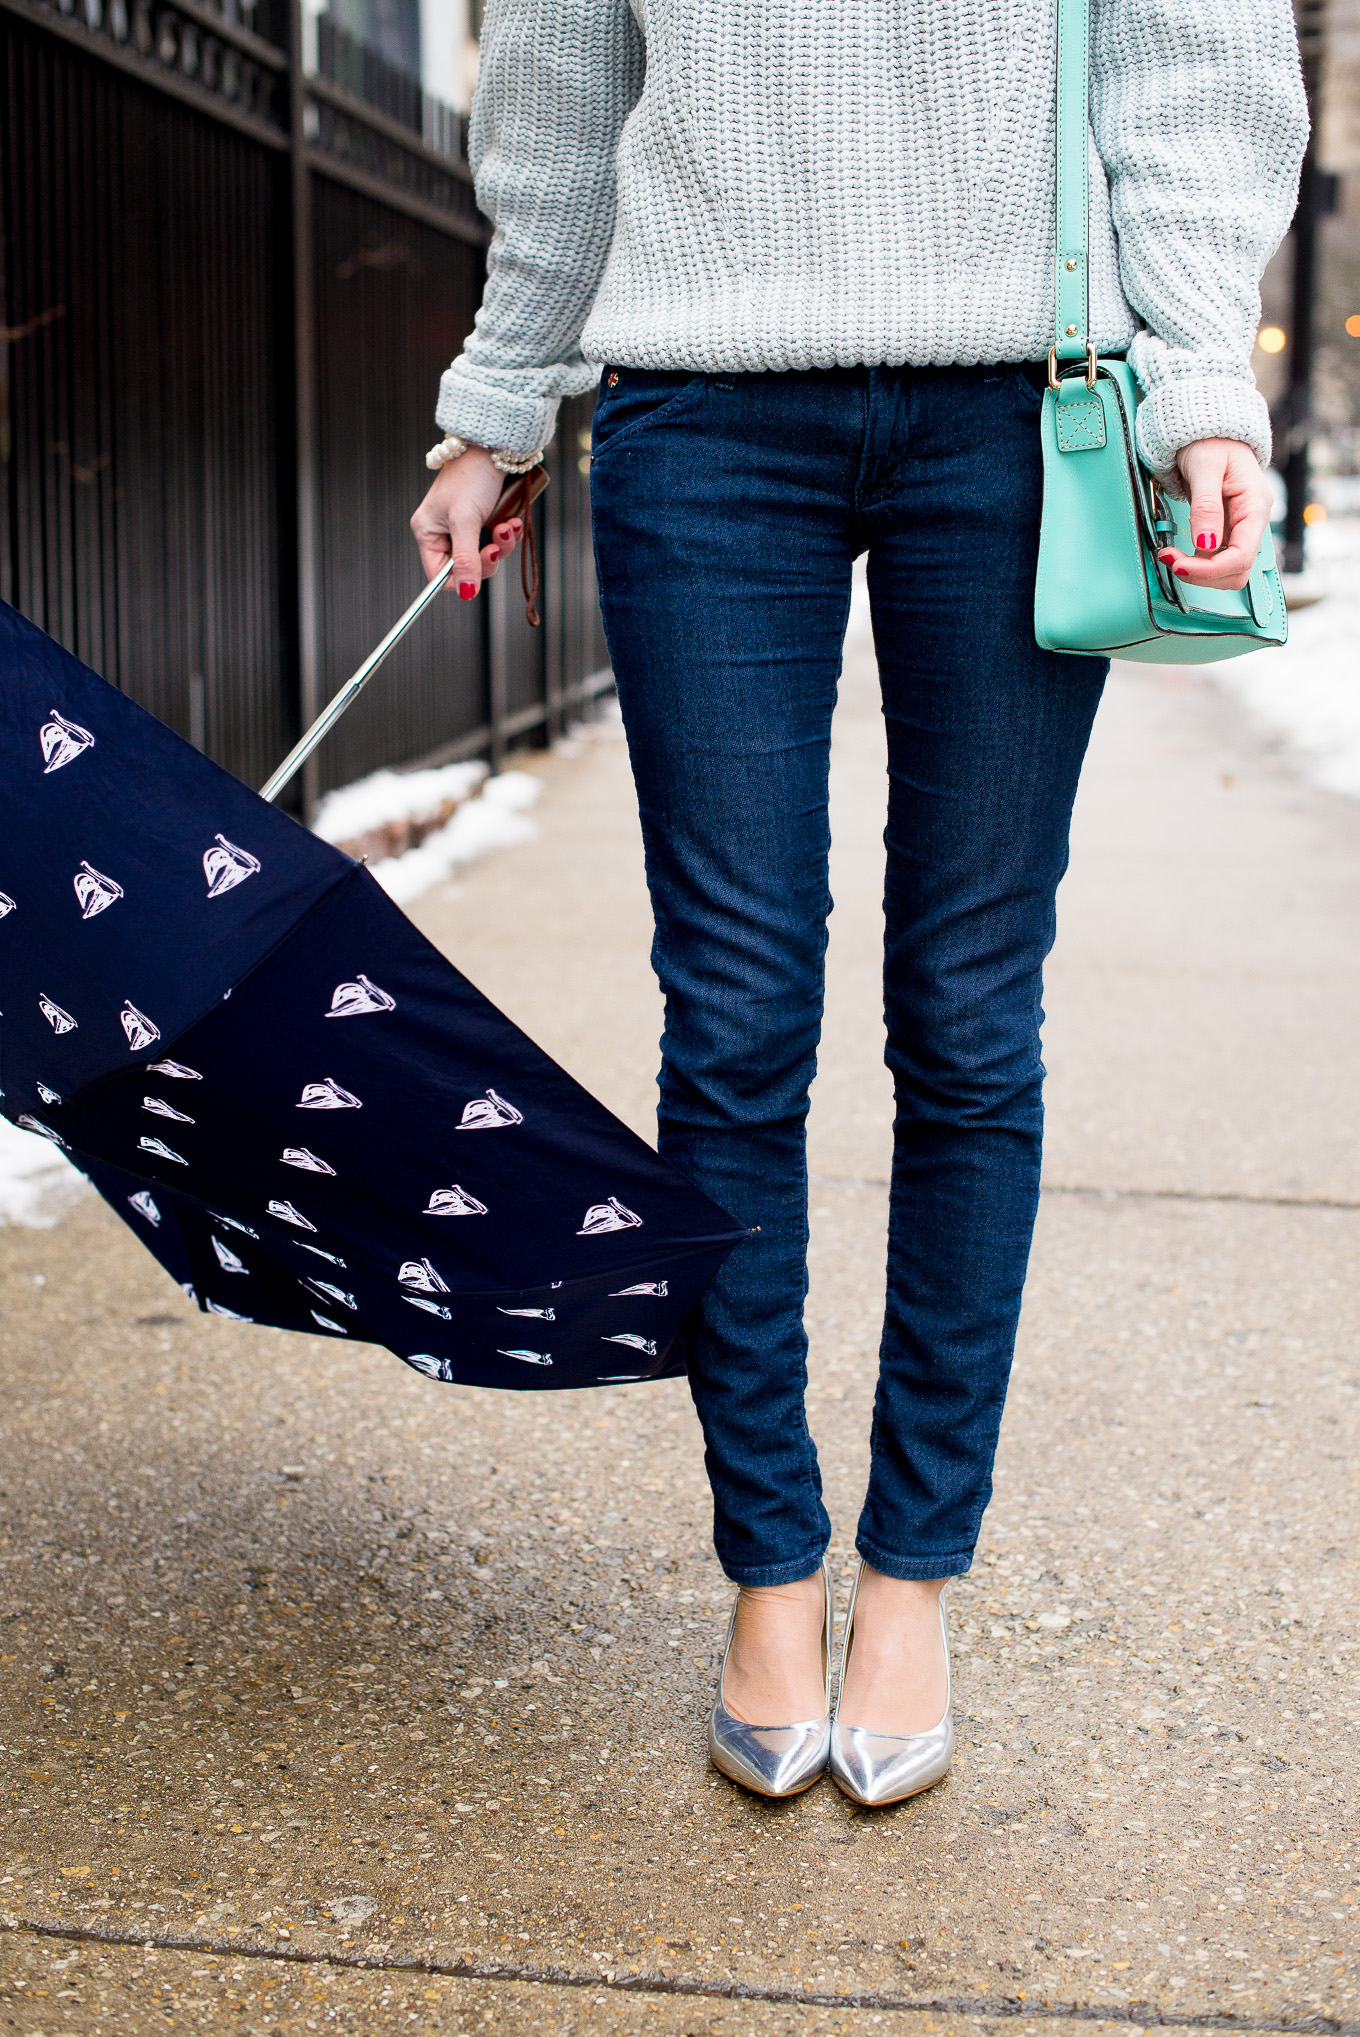 J.Crew Sailboat Umbrella-19